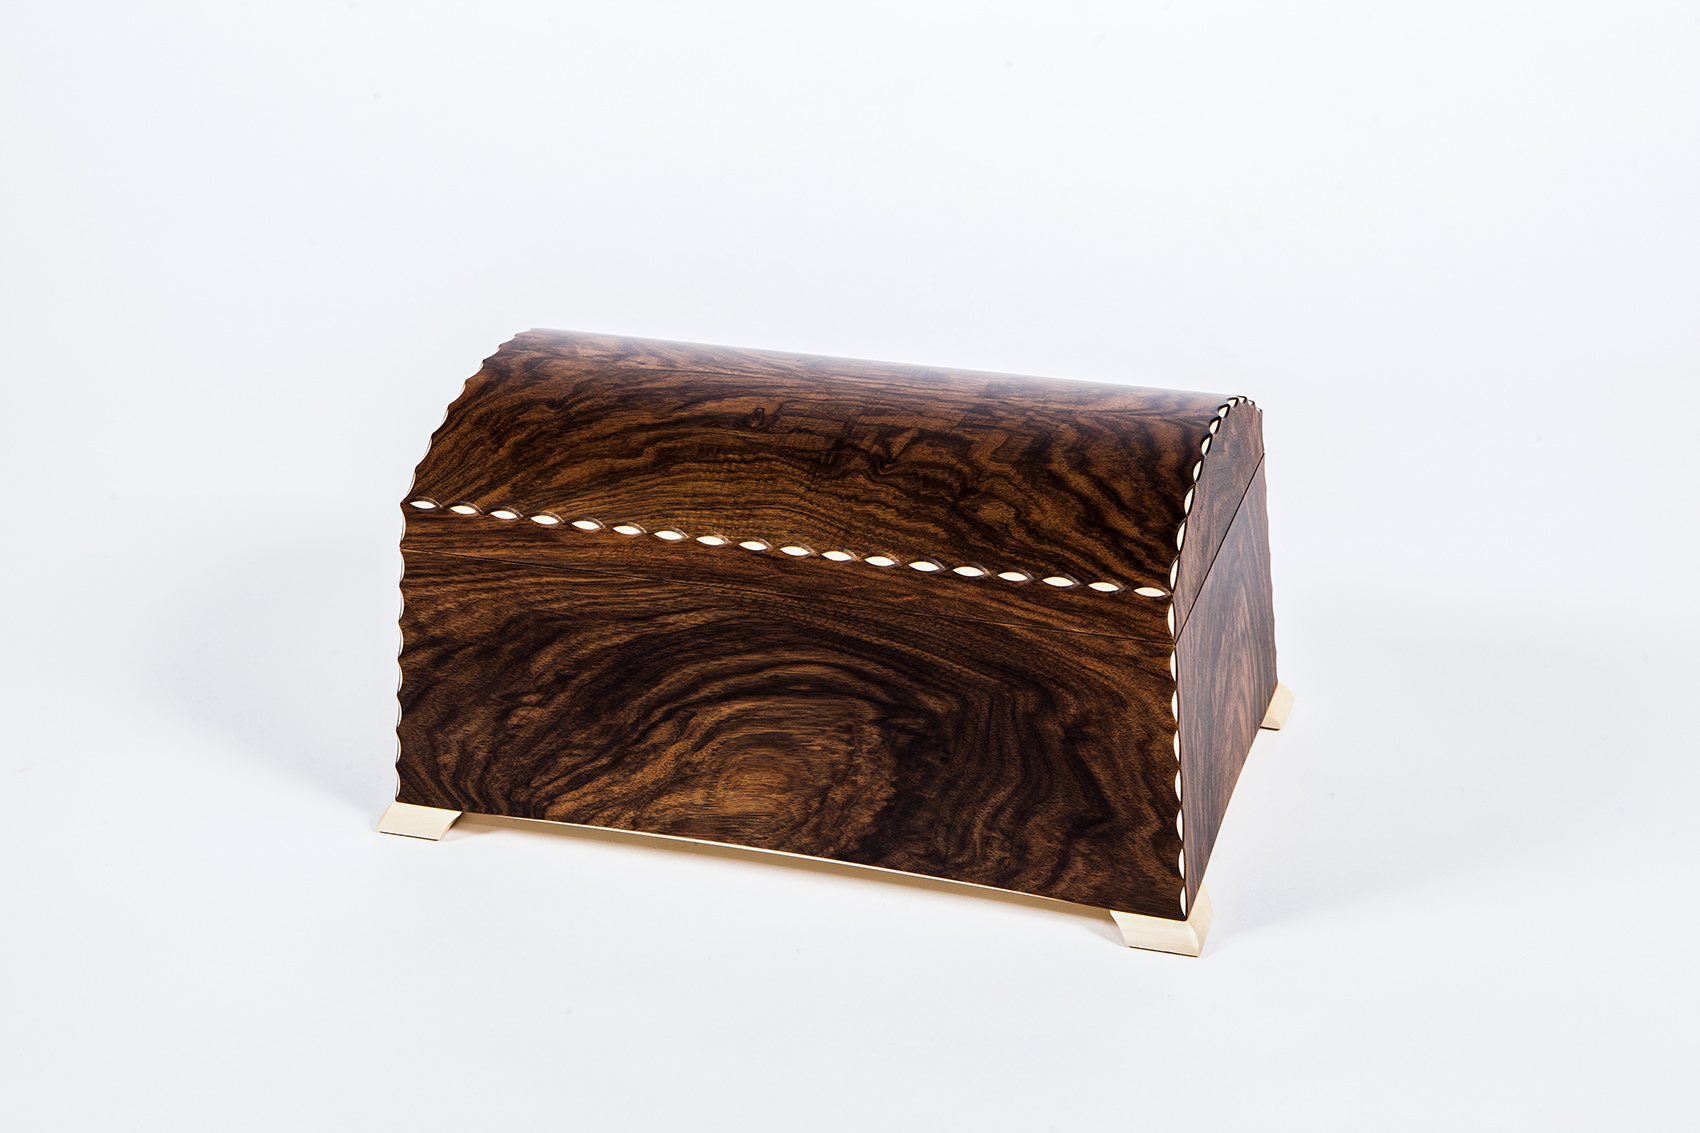 A jewellery box made from the clients' walnut tree